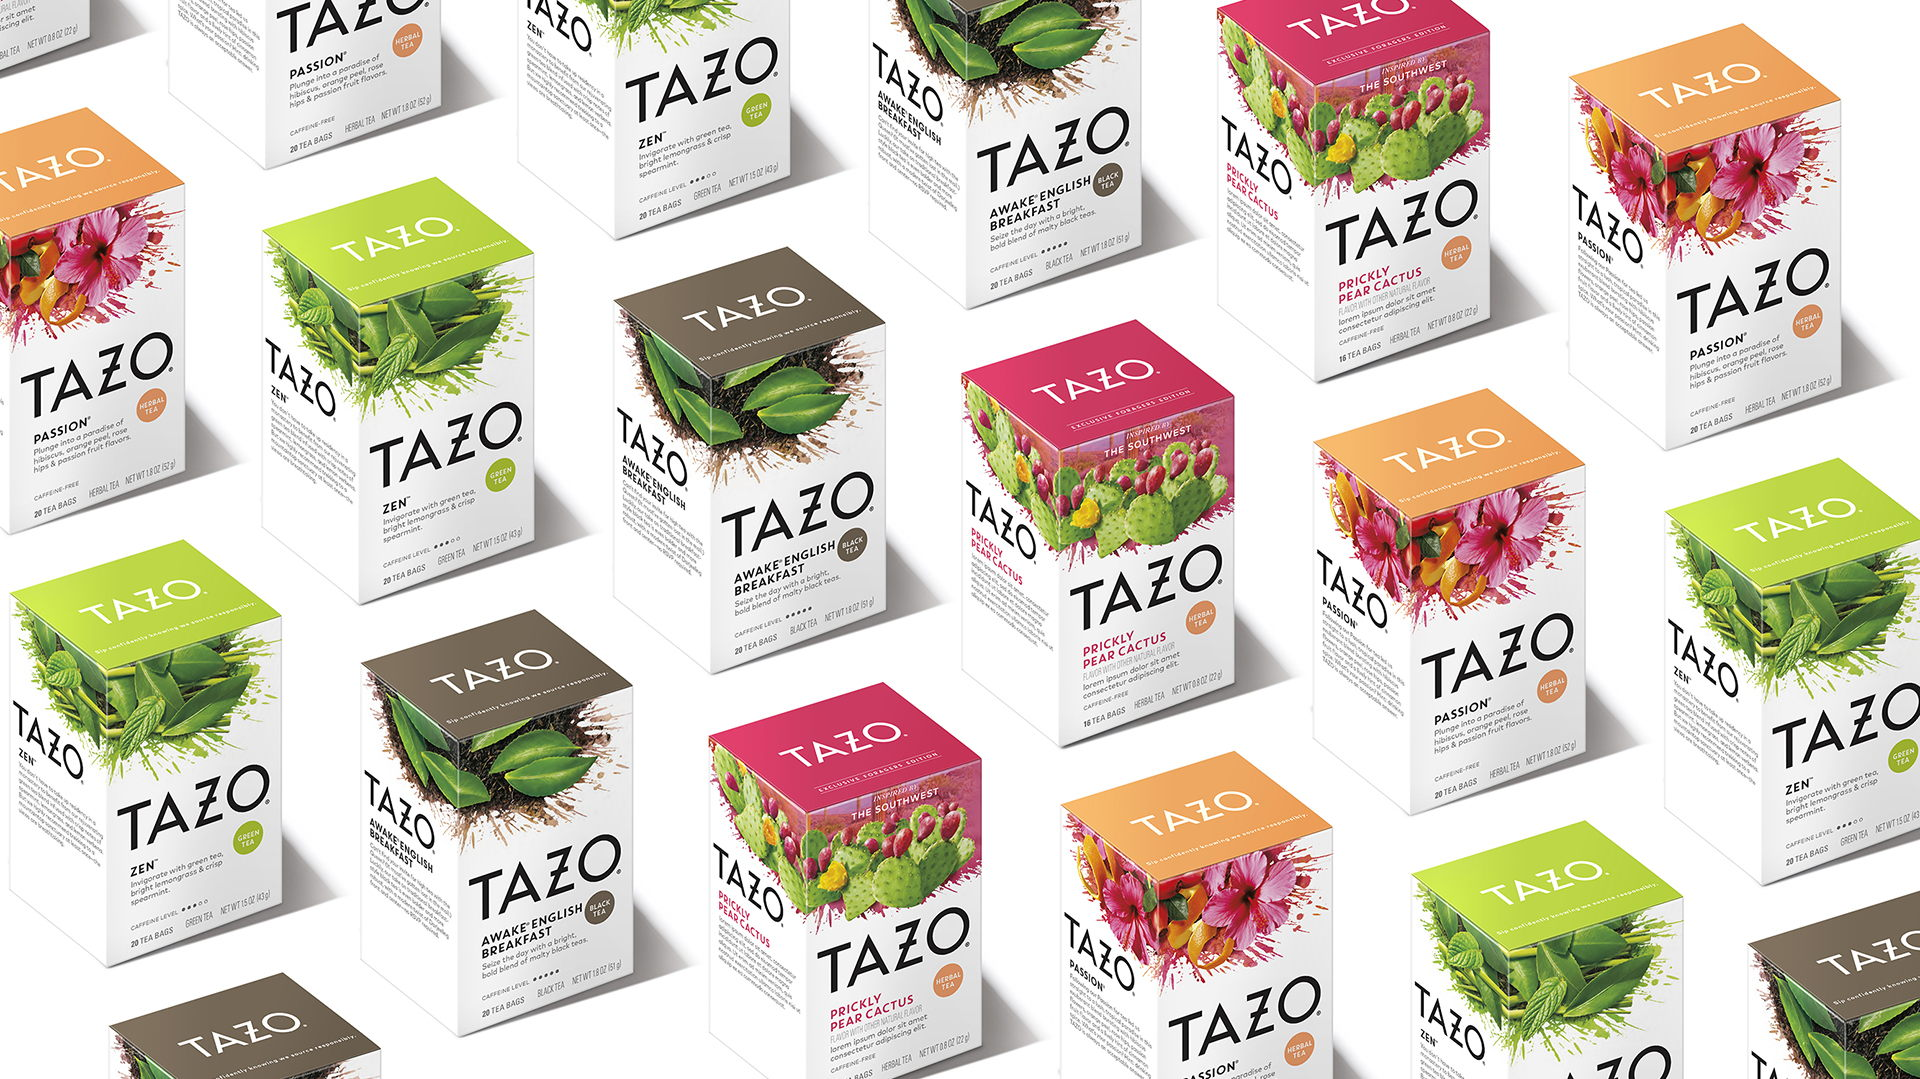 DDW's Tazo Brand Update Is More Refreshing Than A Brisk Cup Of Tea